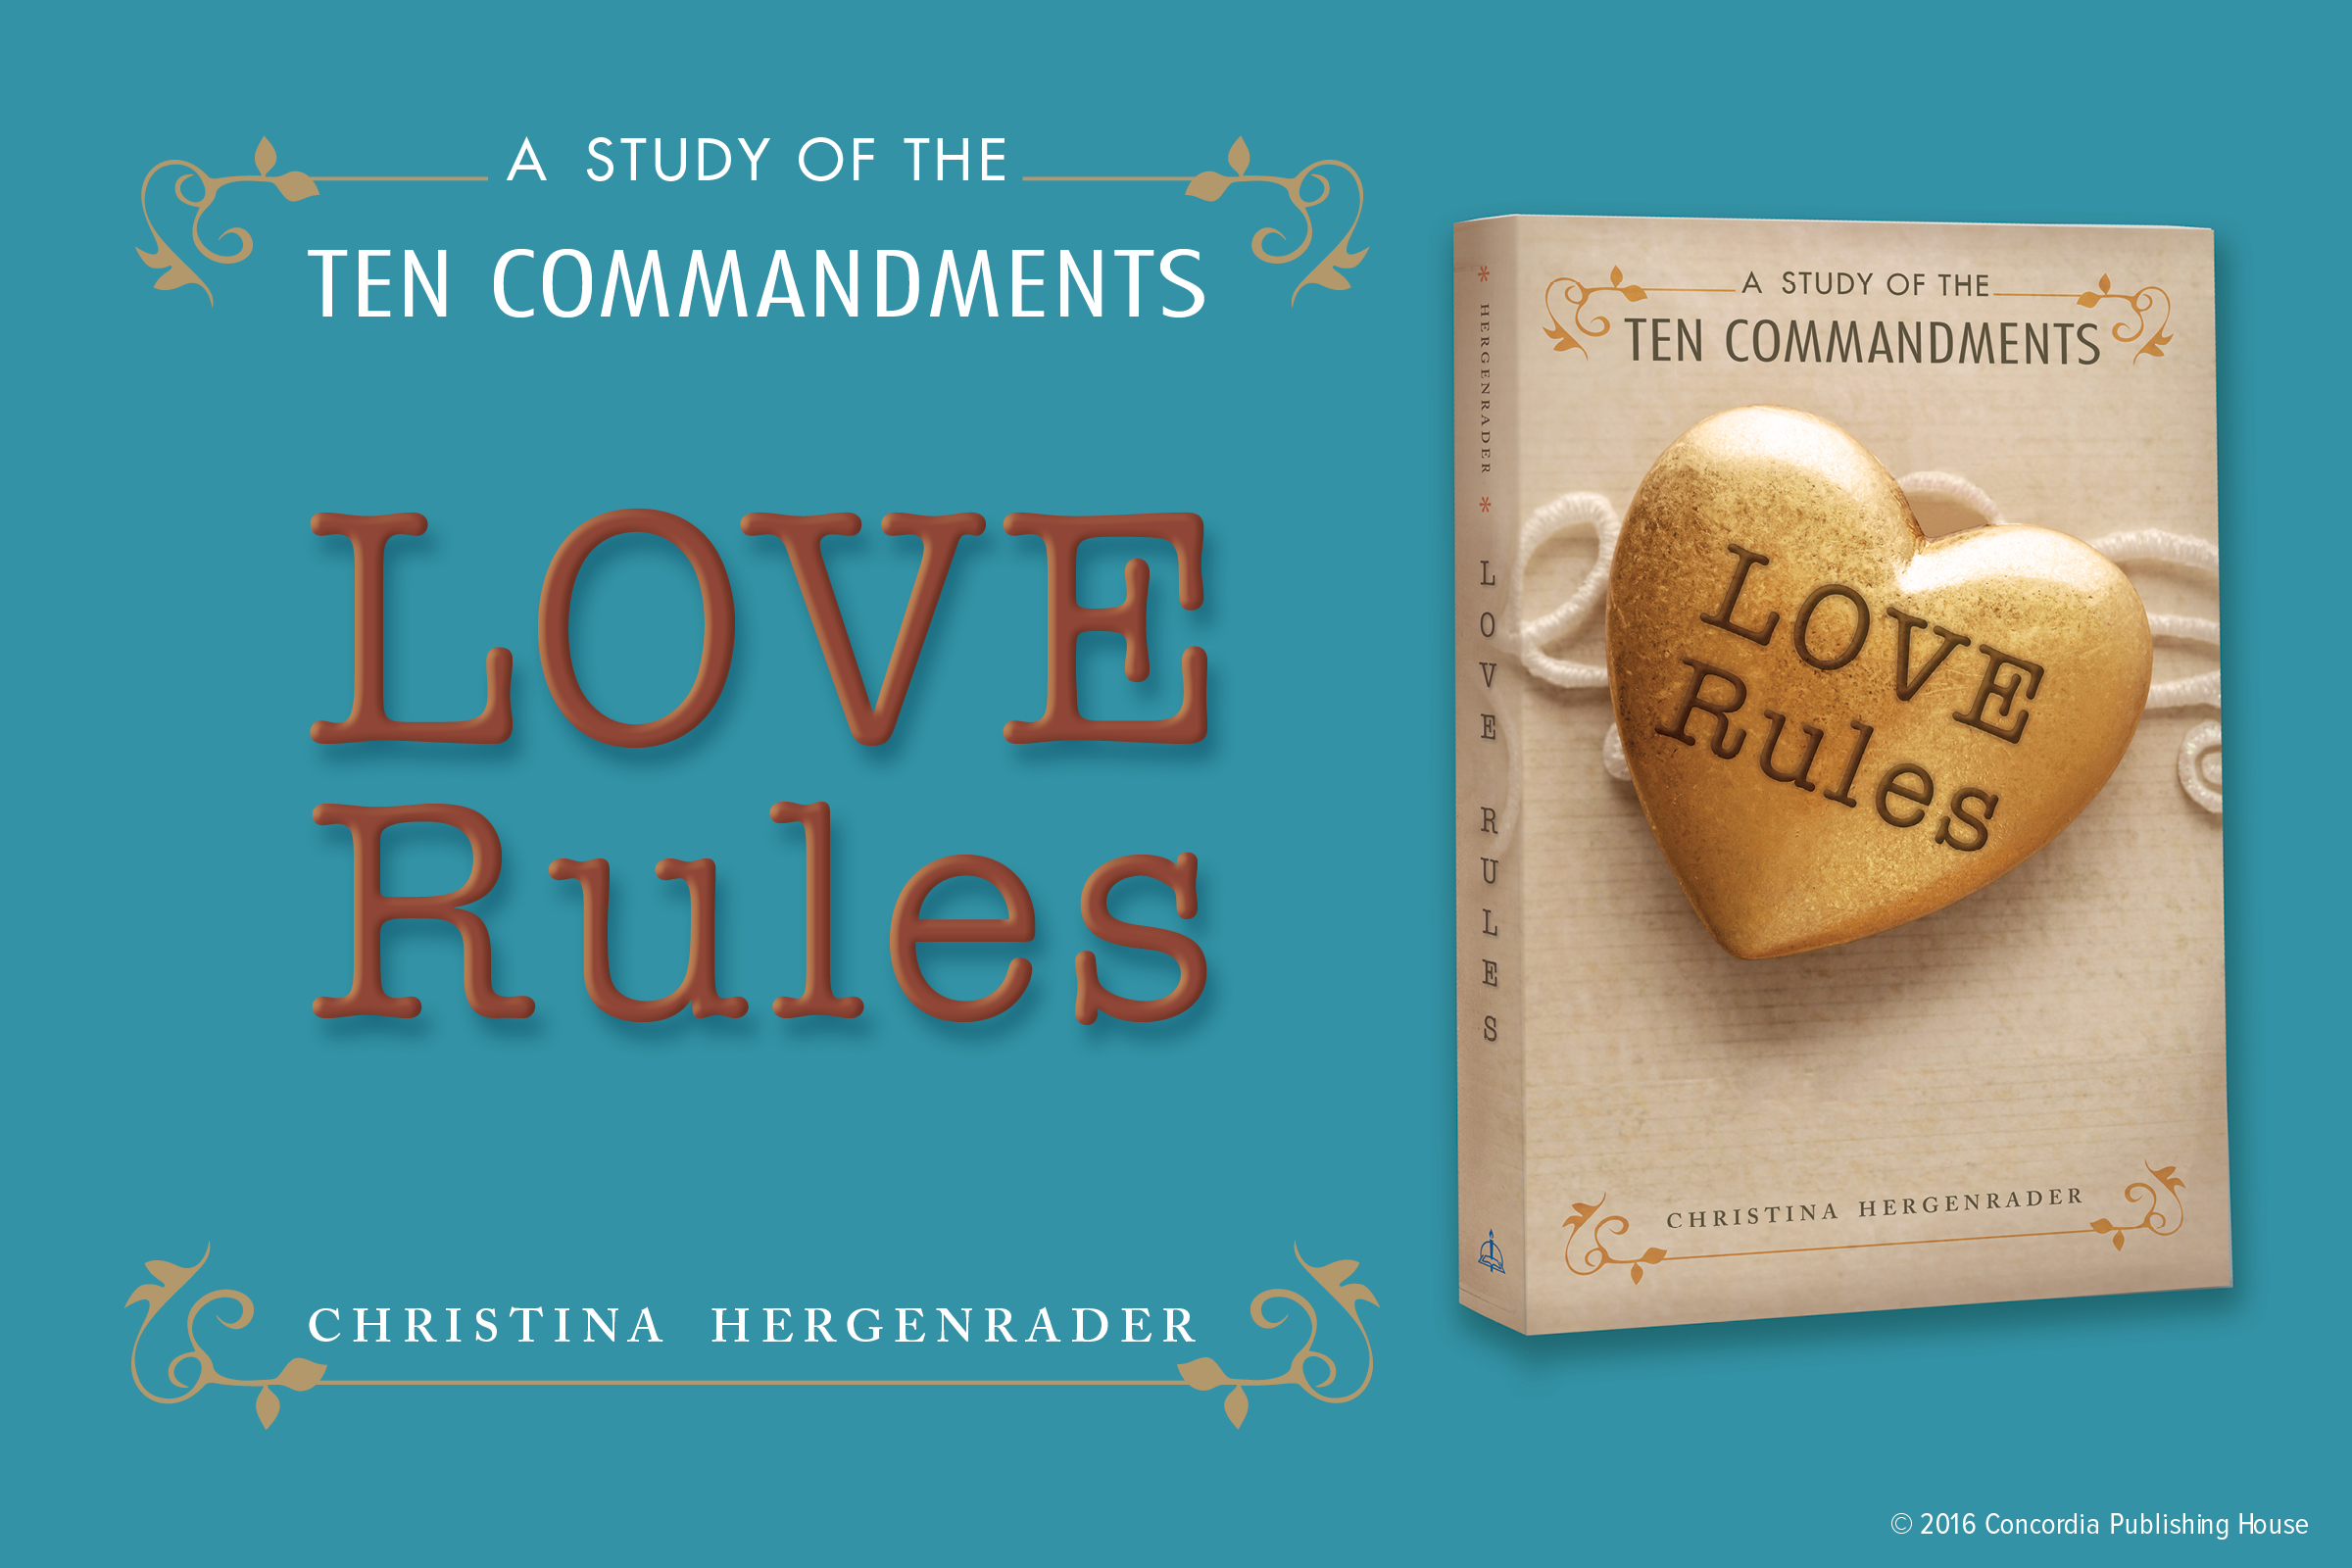 Youth devotions on the ten commandments 10 commandments bookmark array love rules a study of the ten commandments rh cph org free promotional fandeluxe Gallery